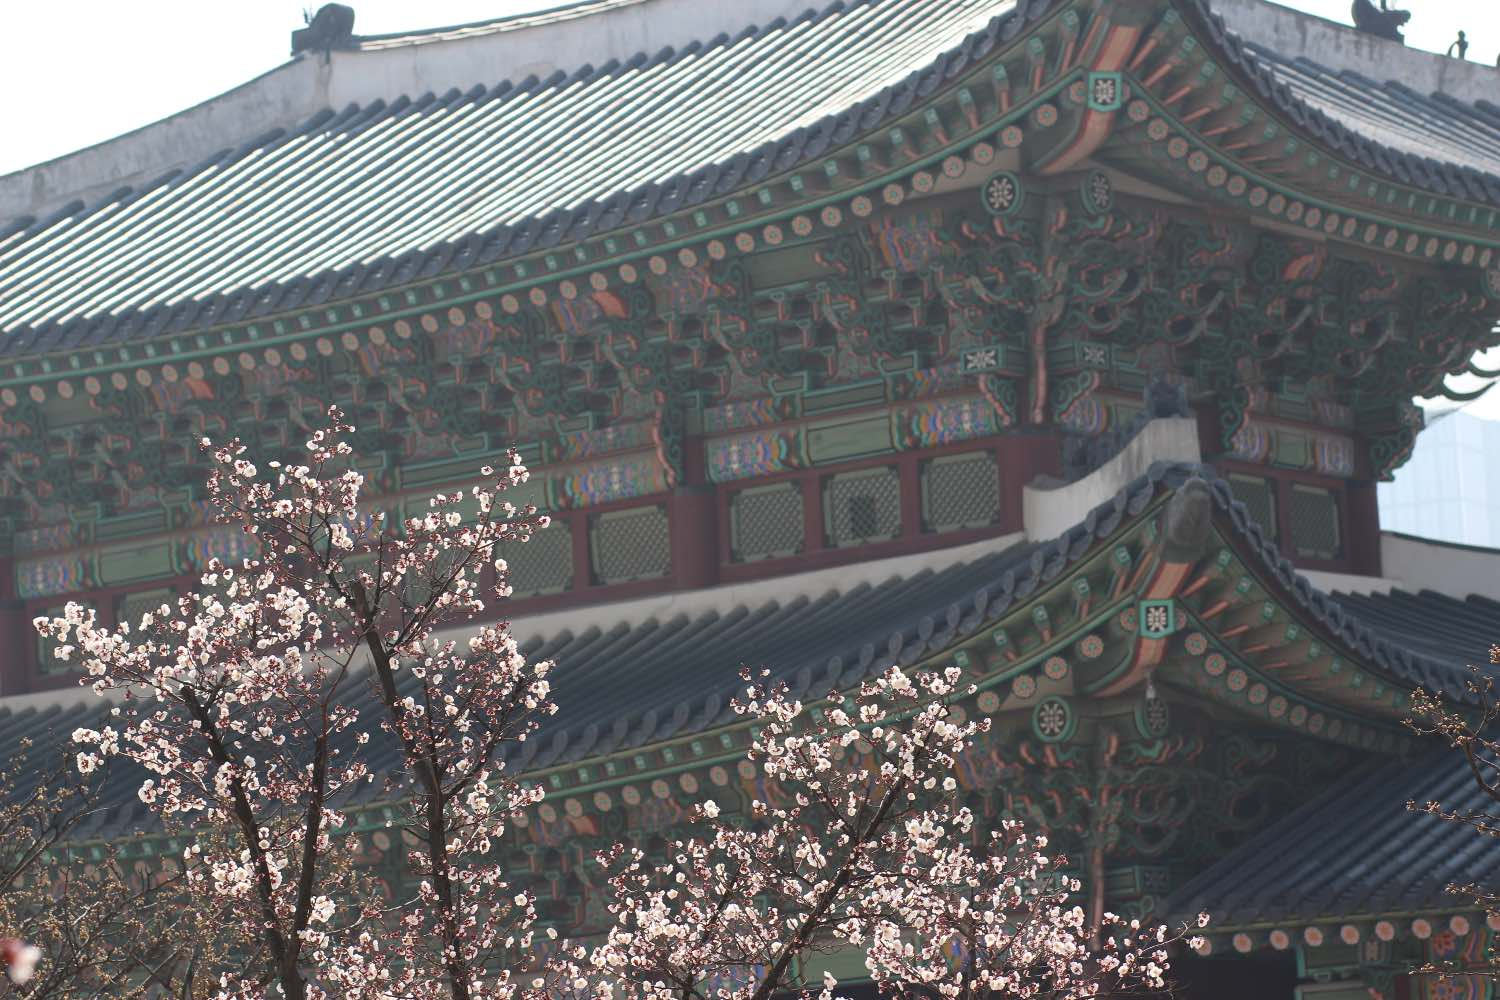 changdeokgung palace in seoul, south korea